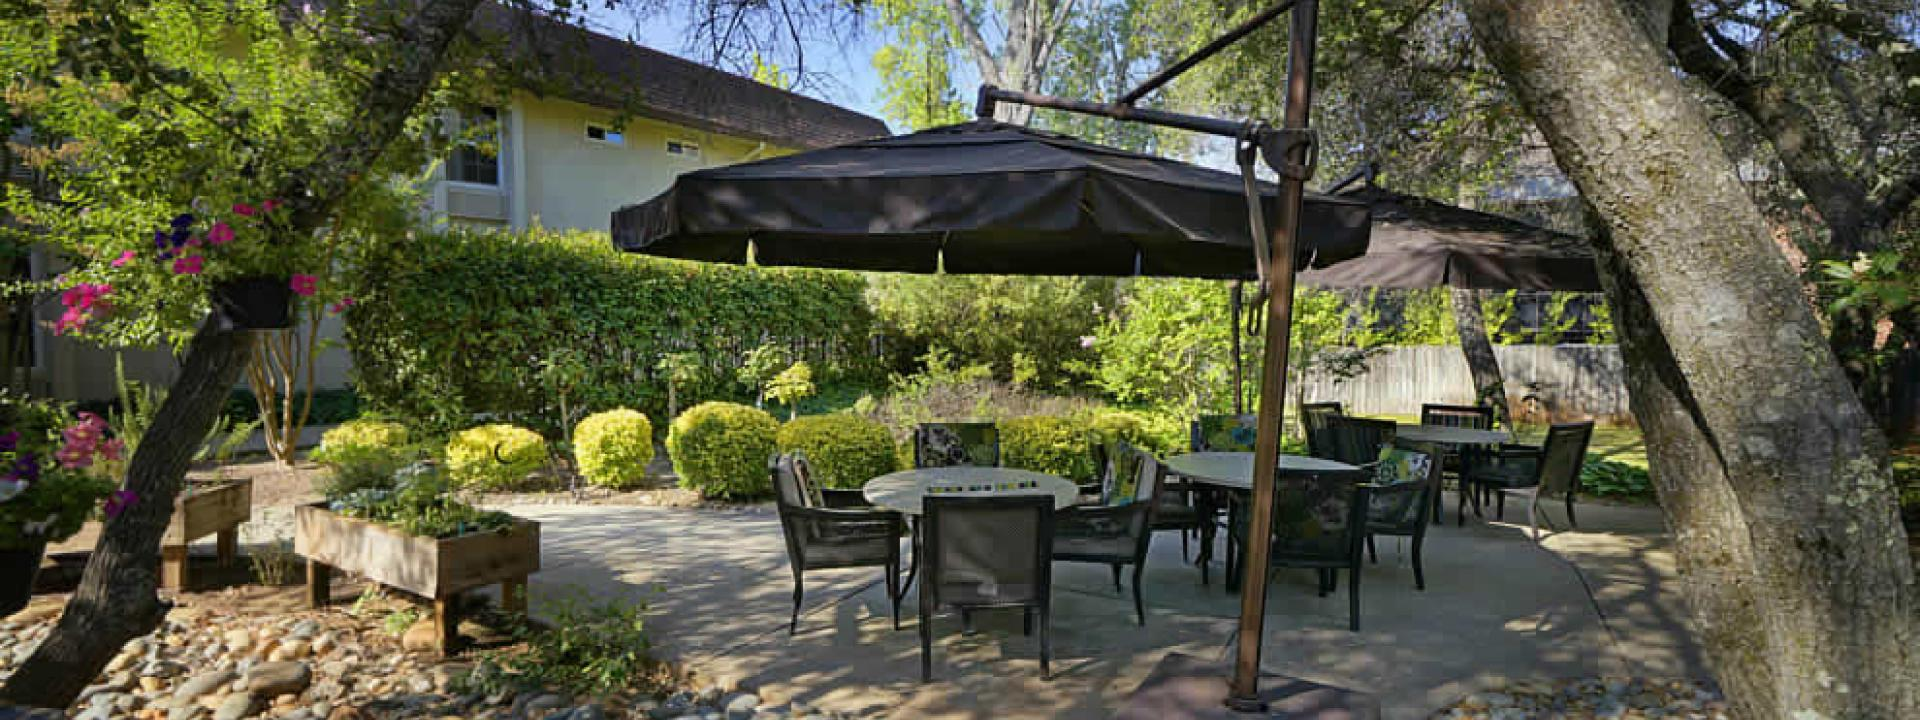 Beautiful shaded patio area with plants, planters, trees and patio table, chairs and umbrella